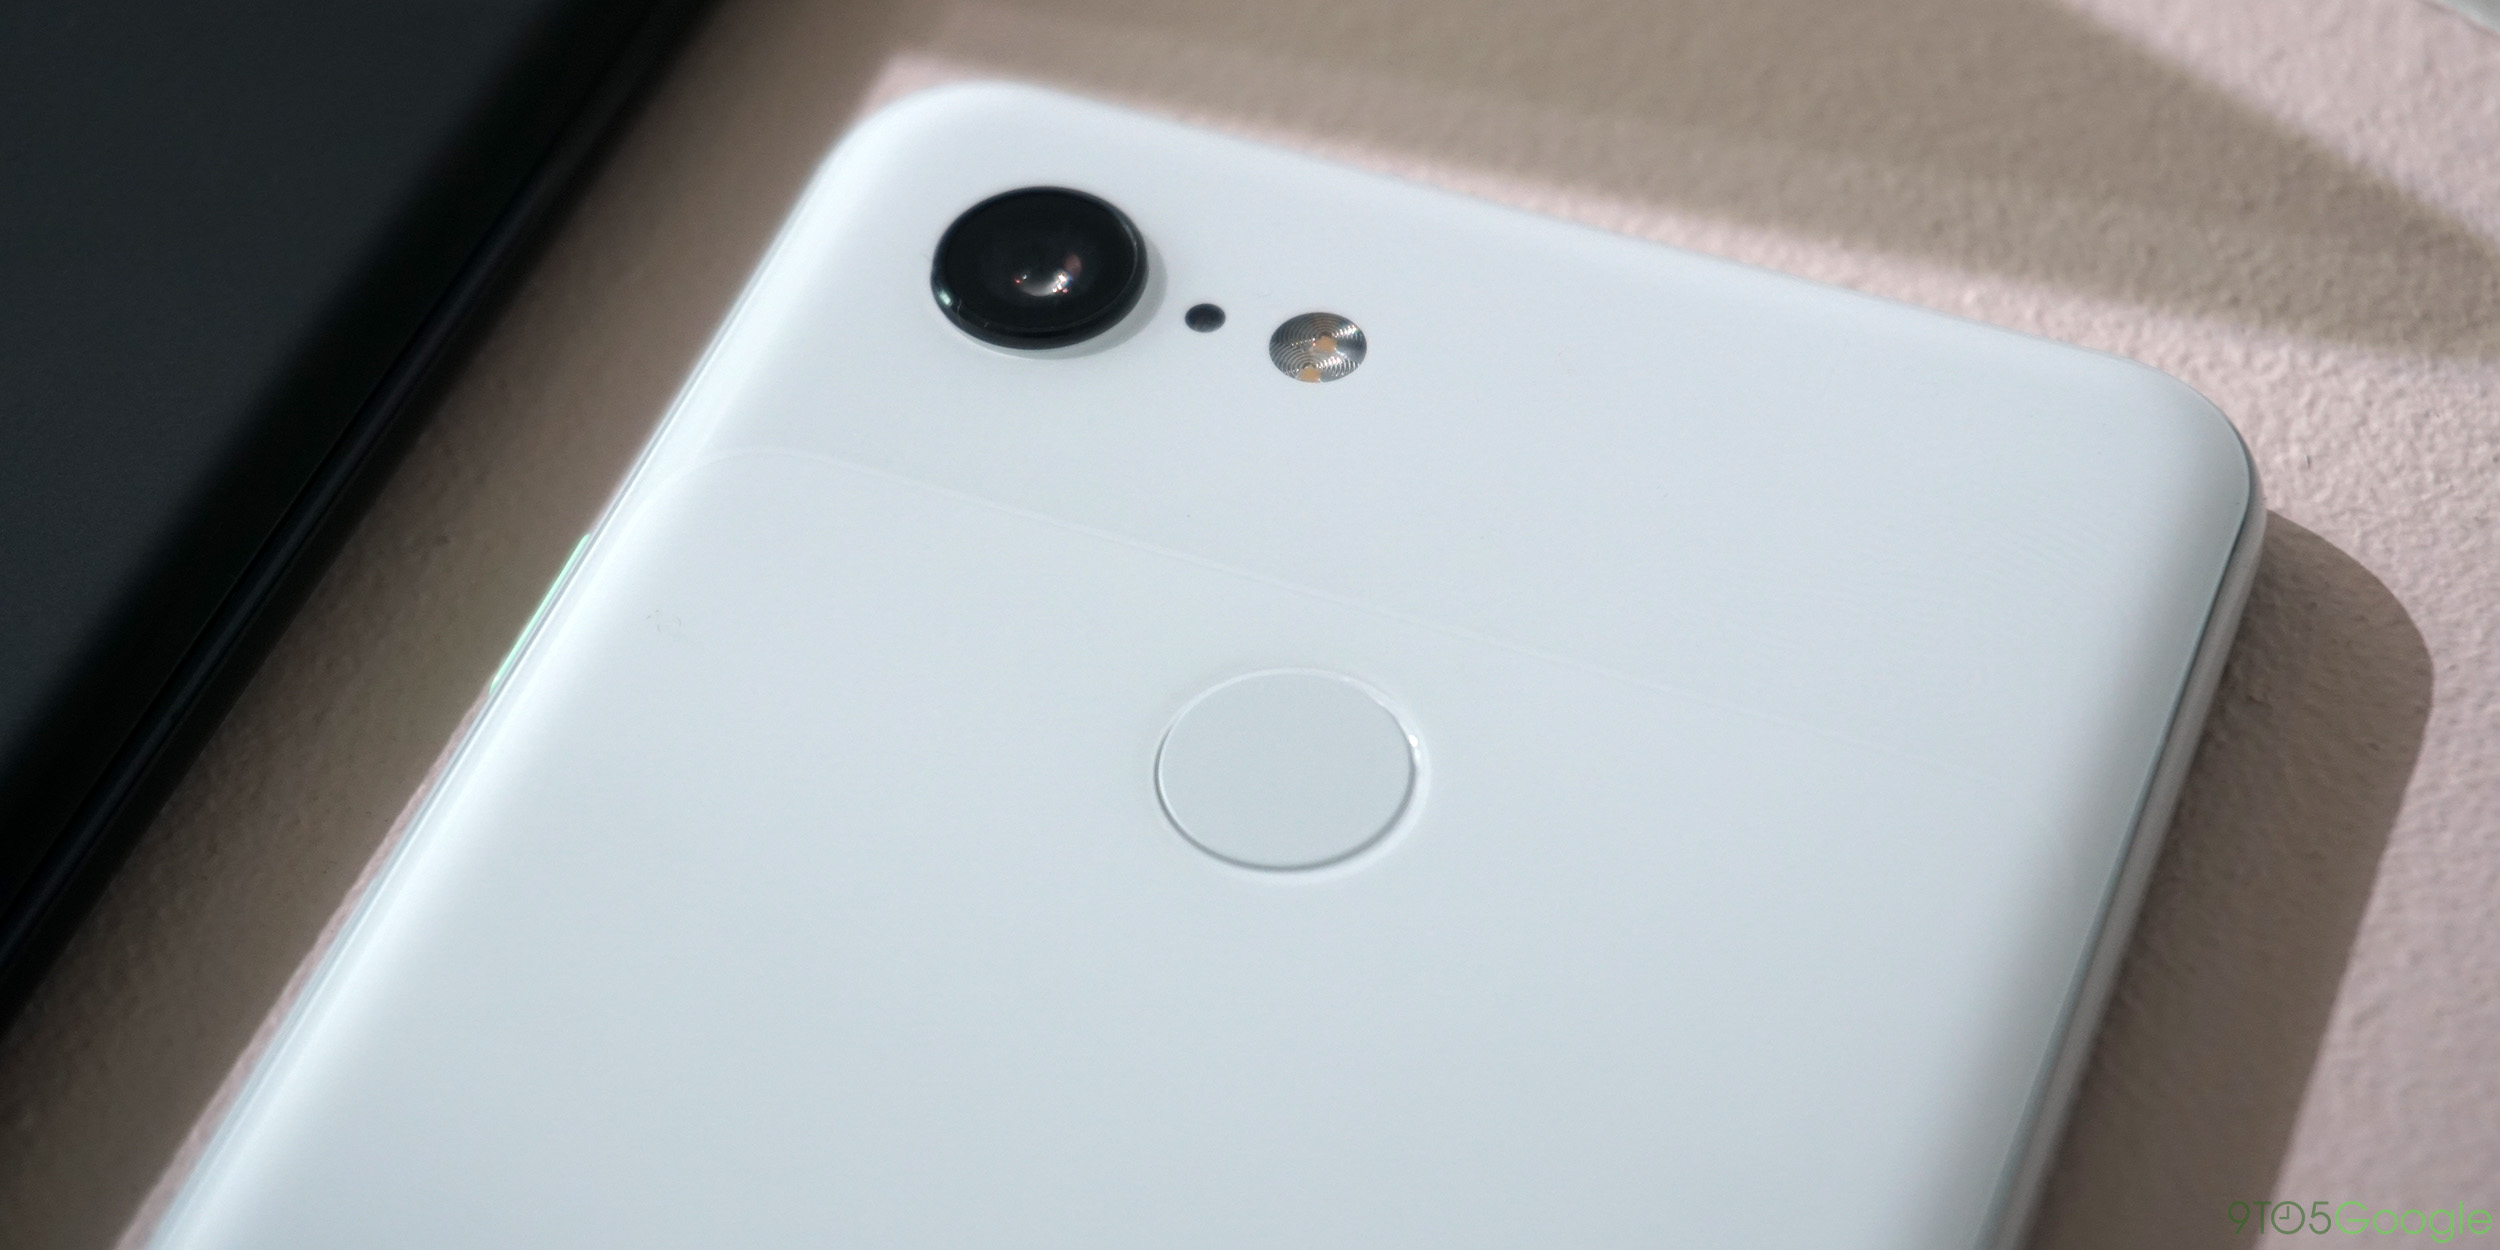 Google Pixel 3 and Google Pixel 3 XL Review: Third time's a charm